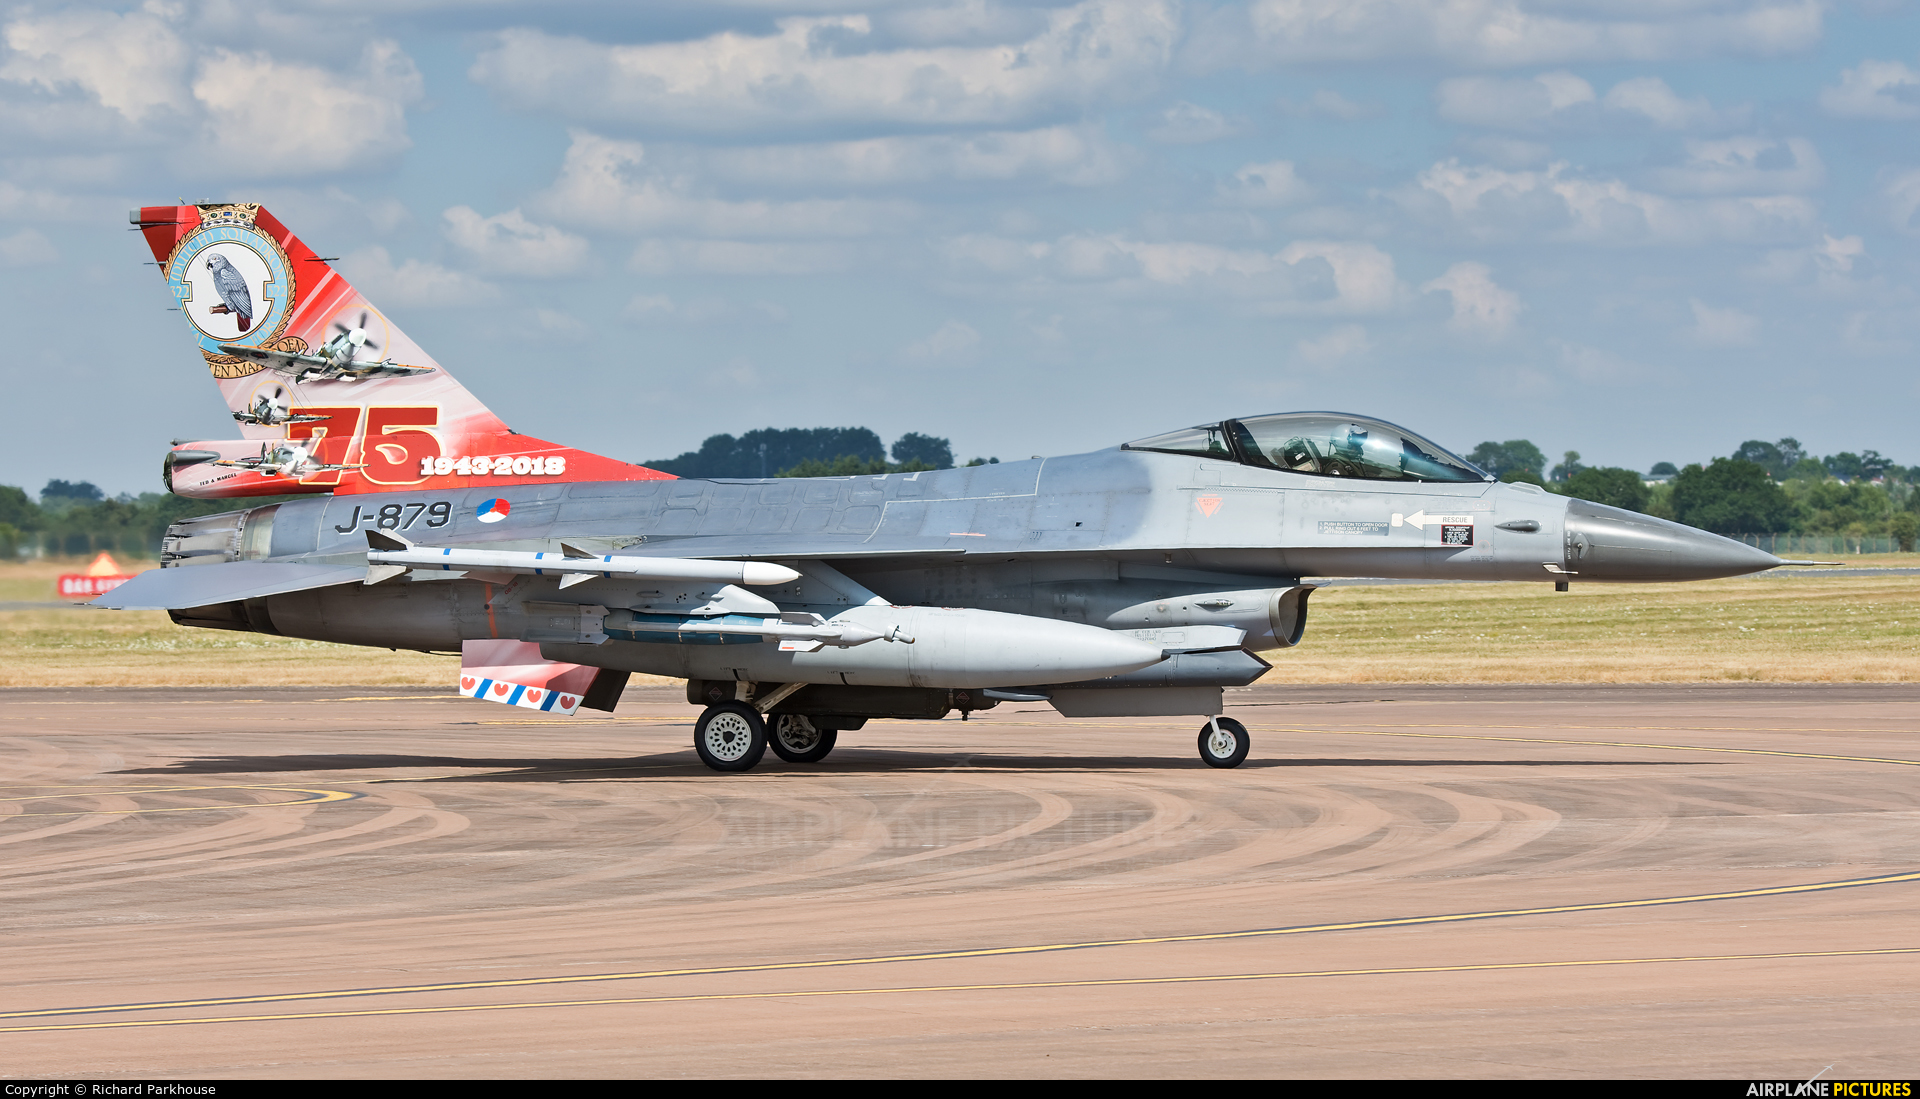 Netherlands - Air Force J-879 aircraft at Fairford